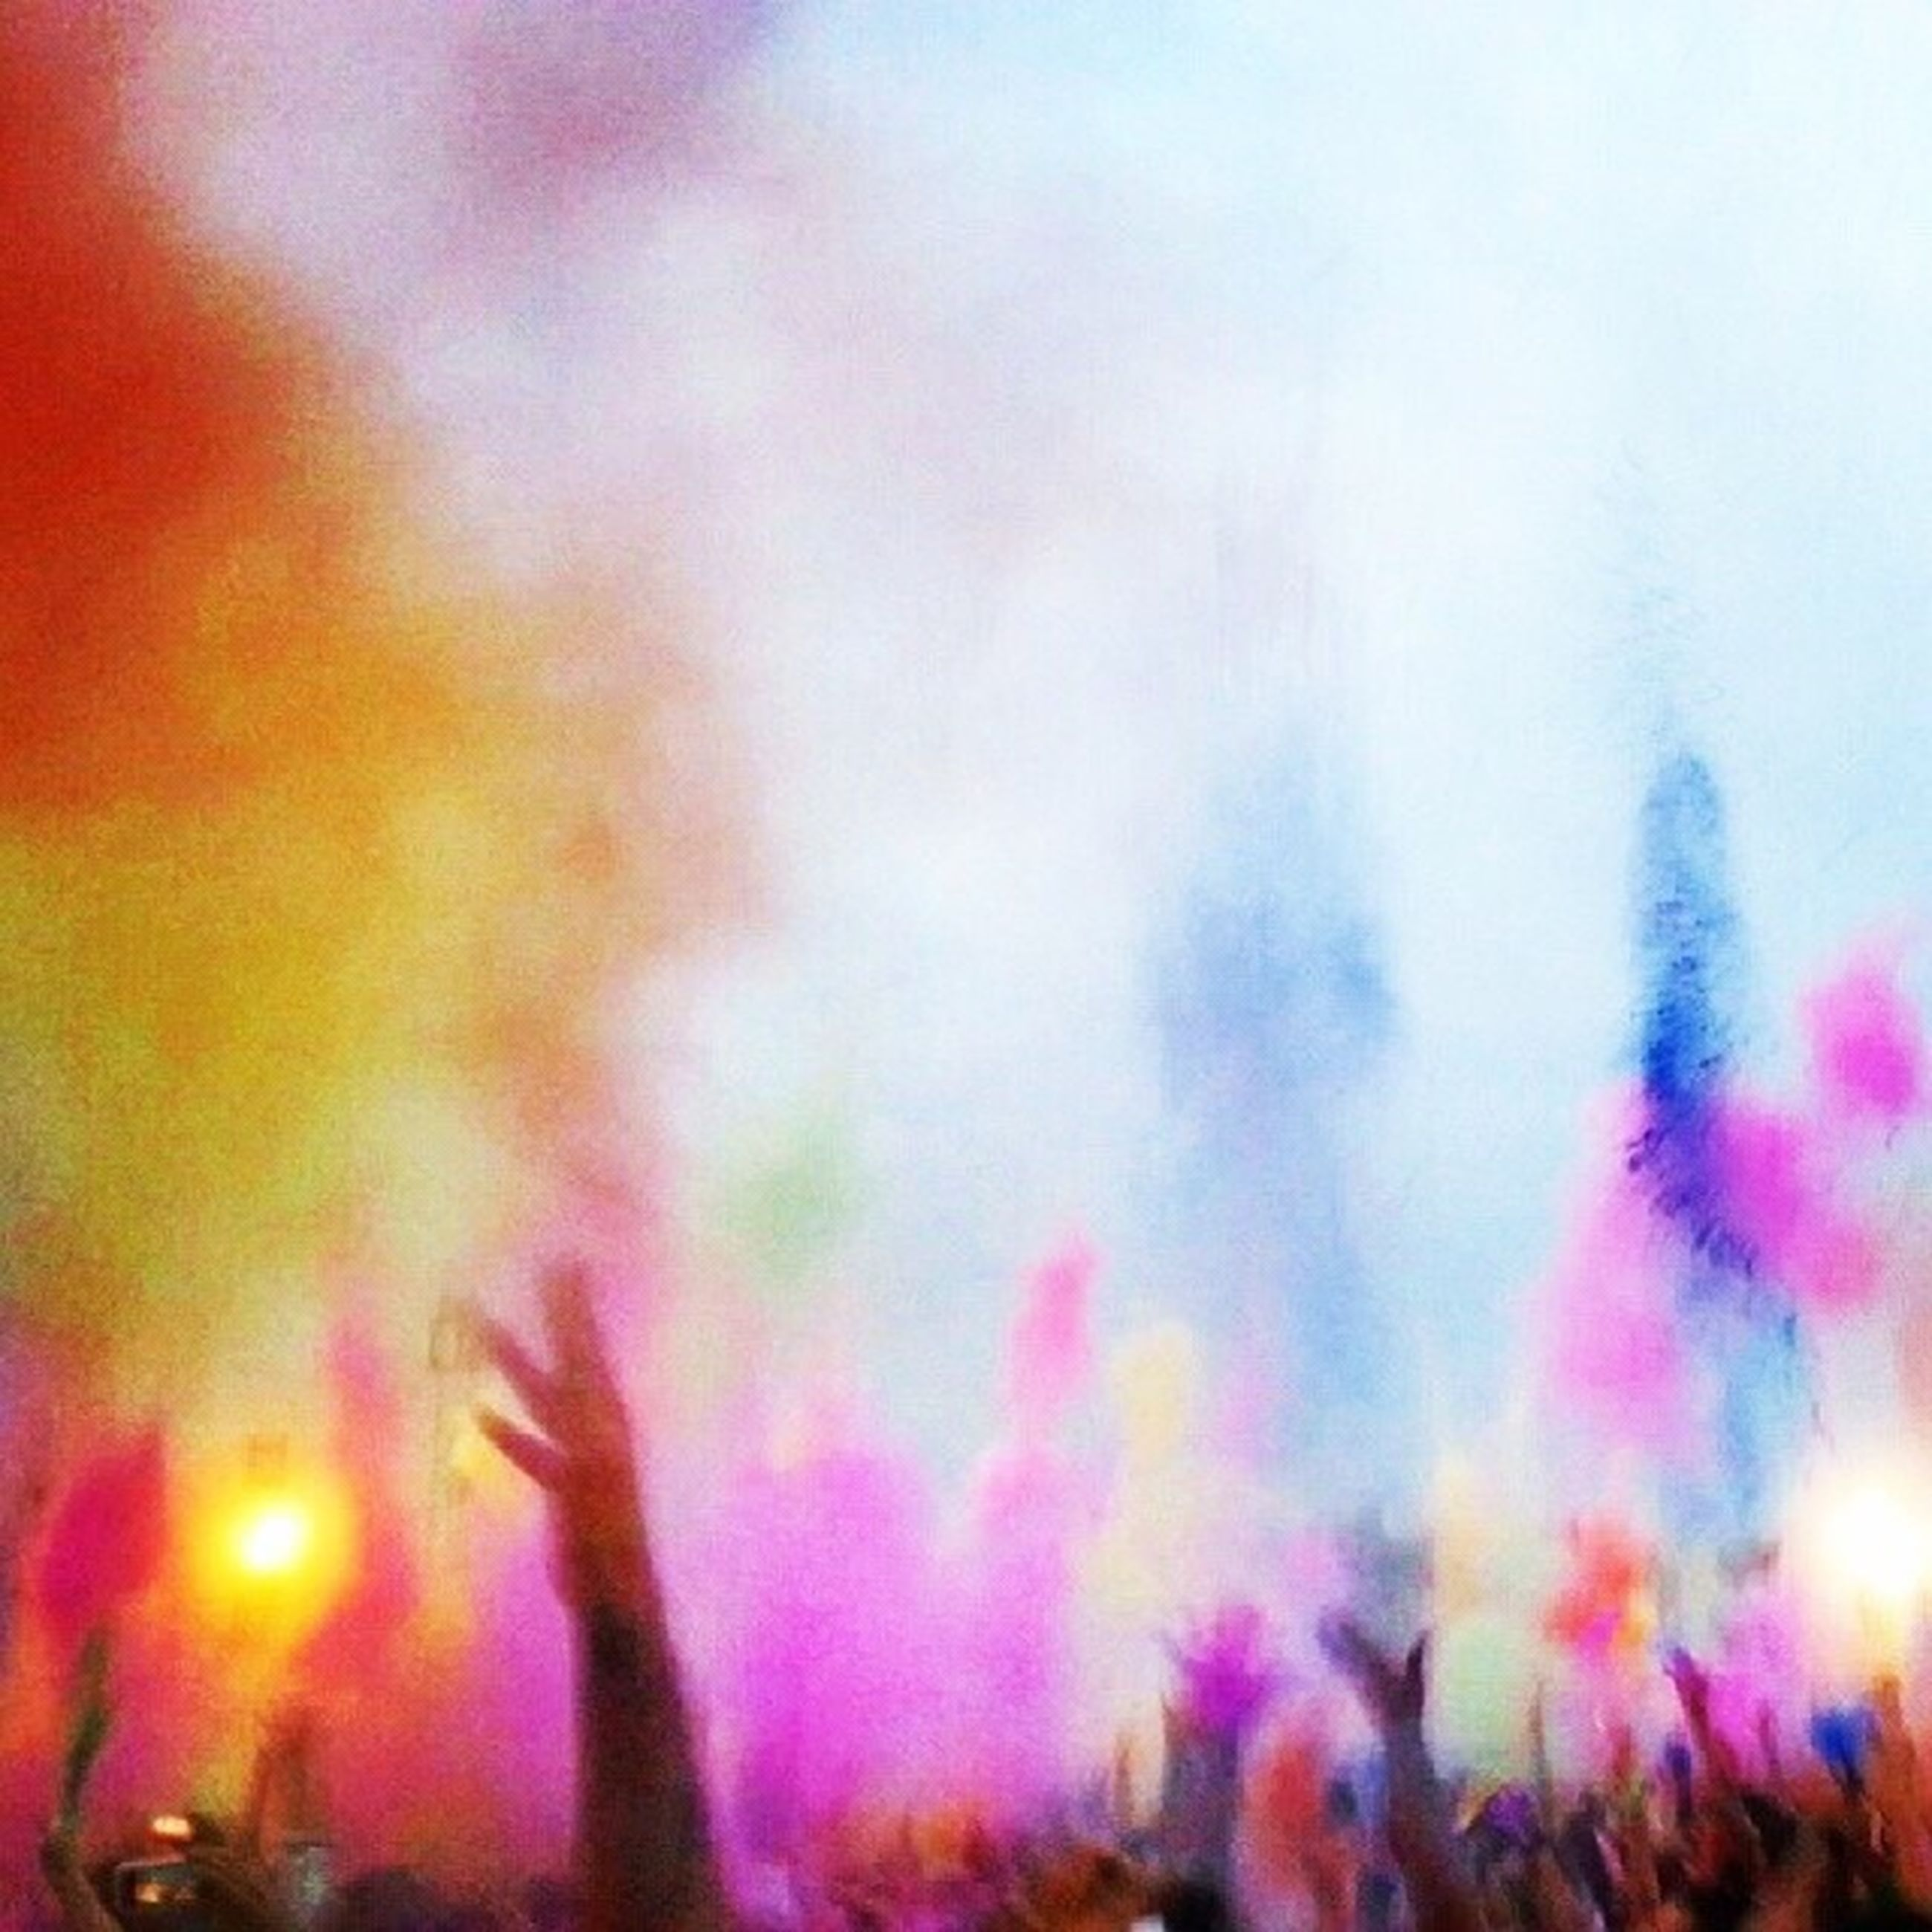 lifestyles, leisure activity, crowd, celebration, large group of people, person, enjoyment, men, illuminated, event, arts culture and entertainment, fun, togetherness, arms raised, standing, excitement, nightlife, multi colored